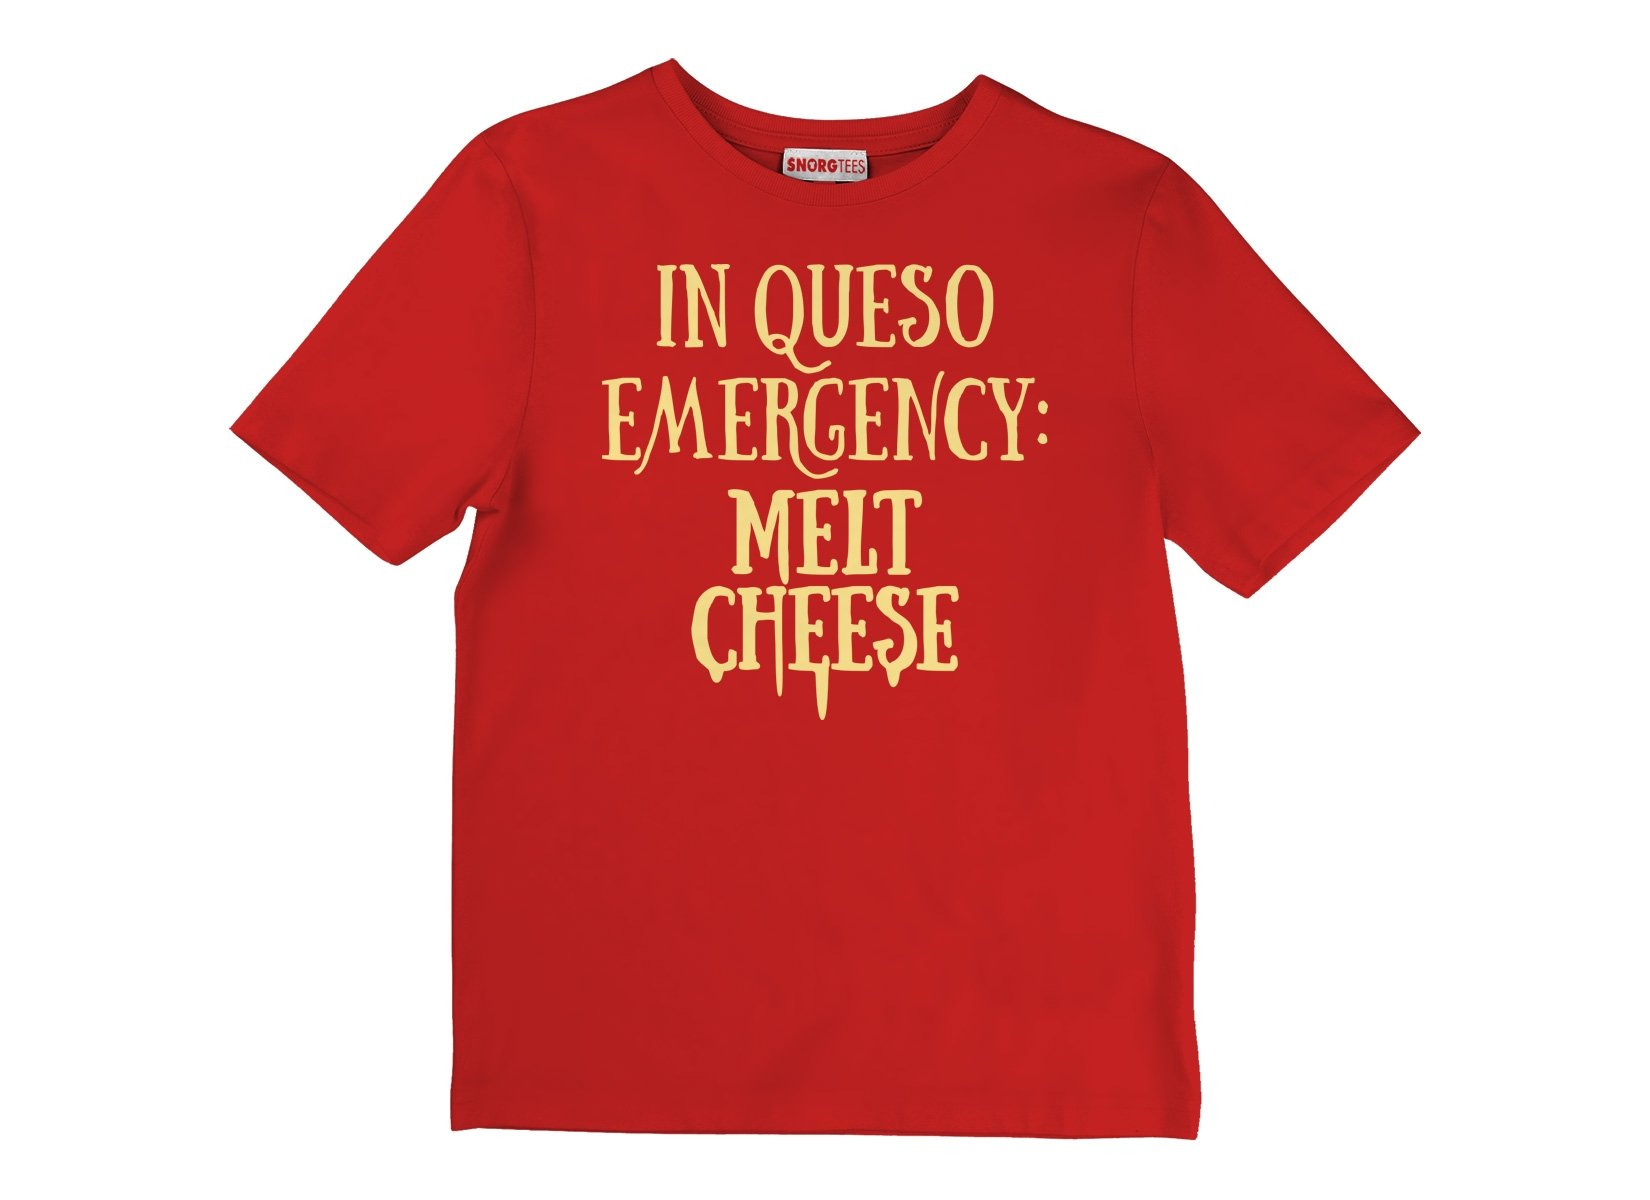 In Queso Emergency: Melt Cheese on Kids T-Shirt